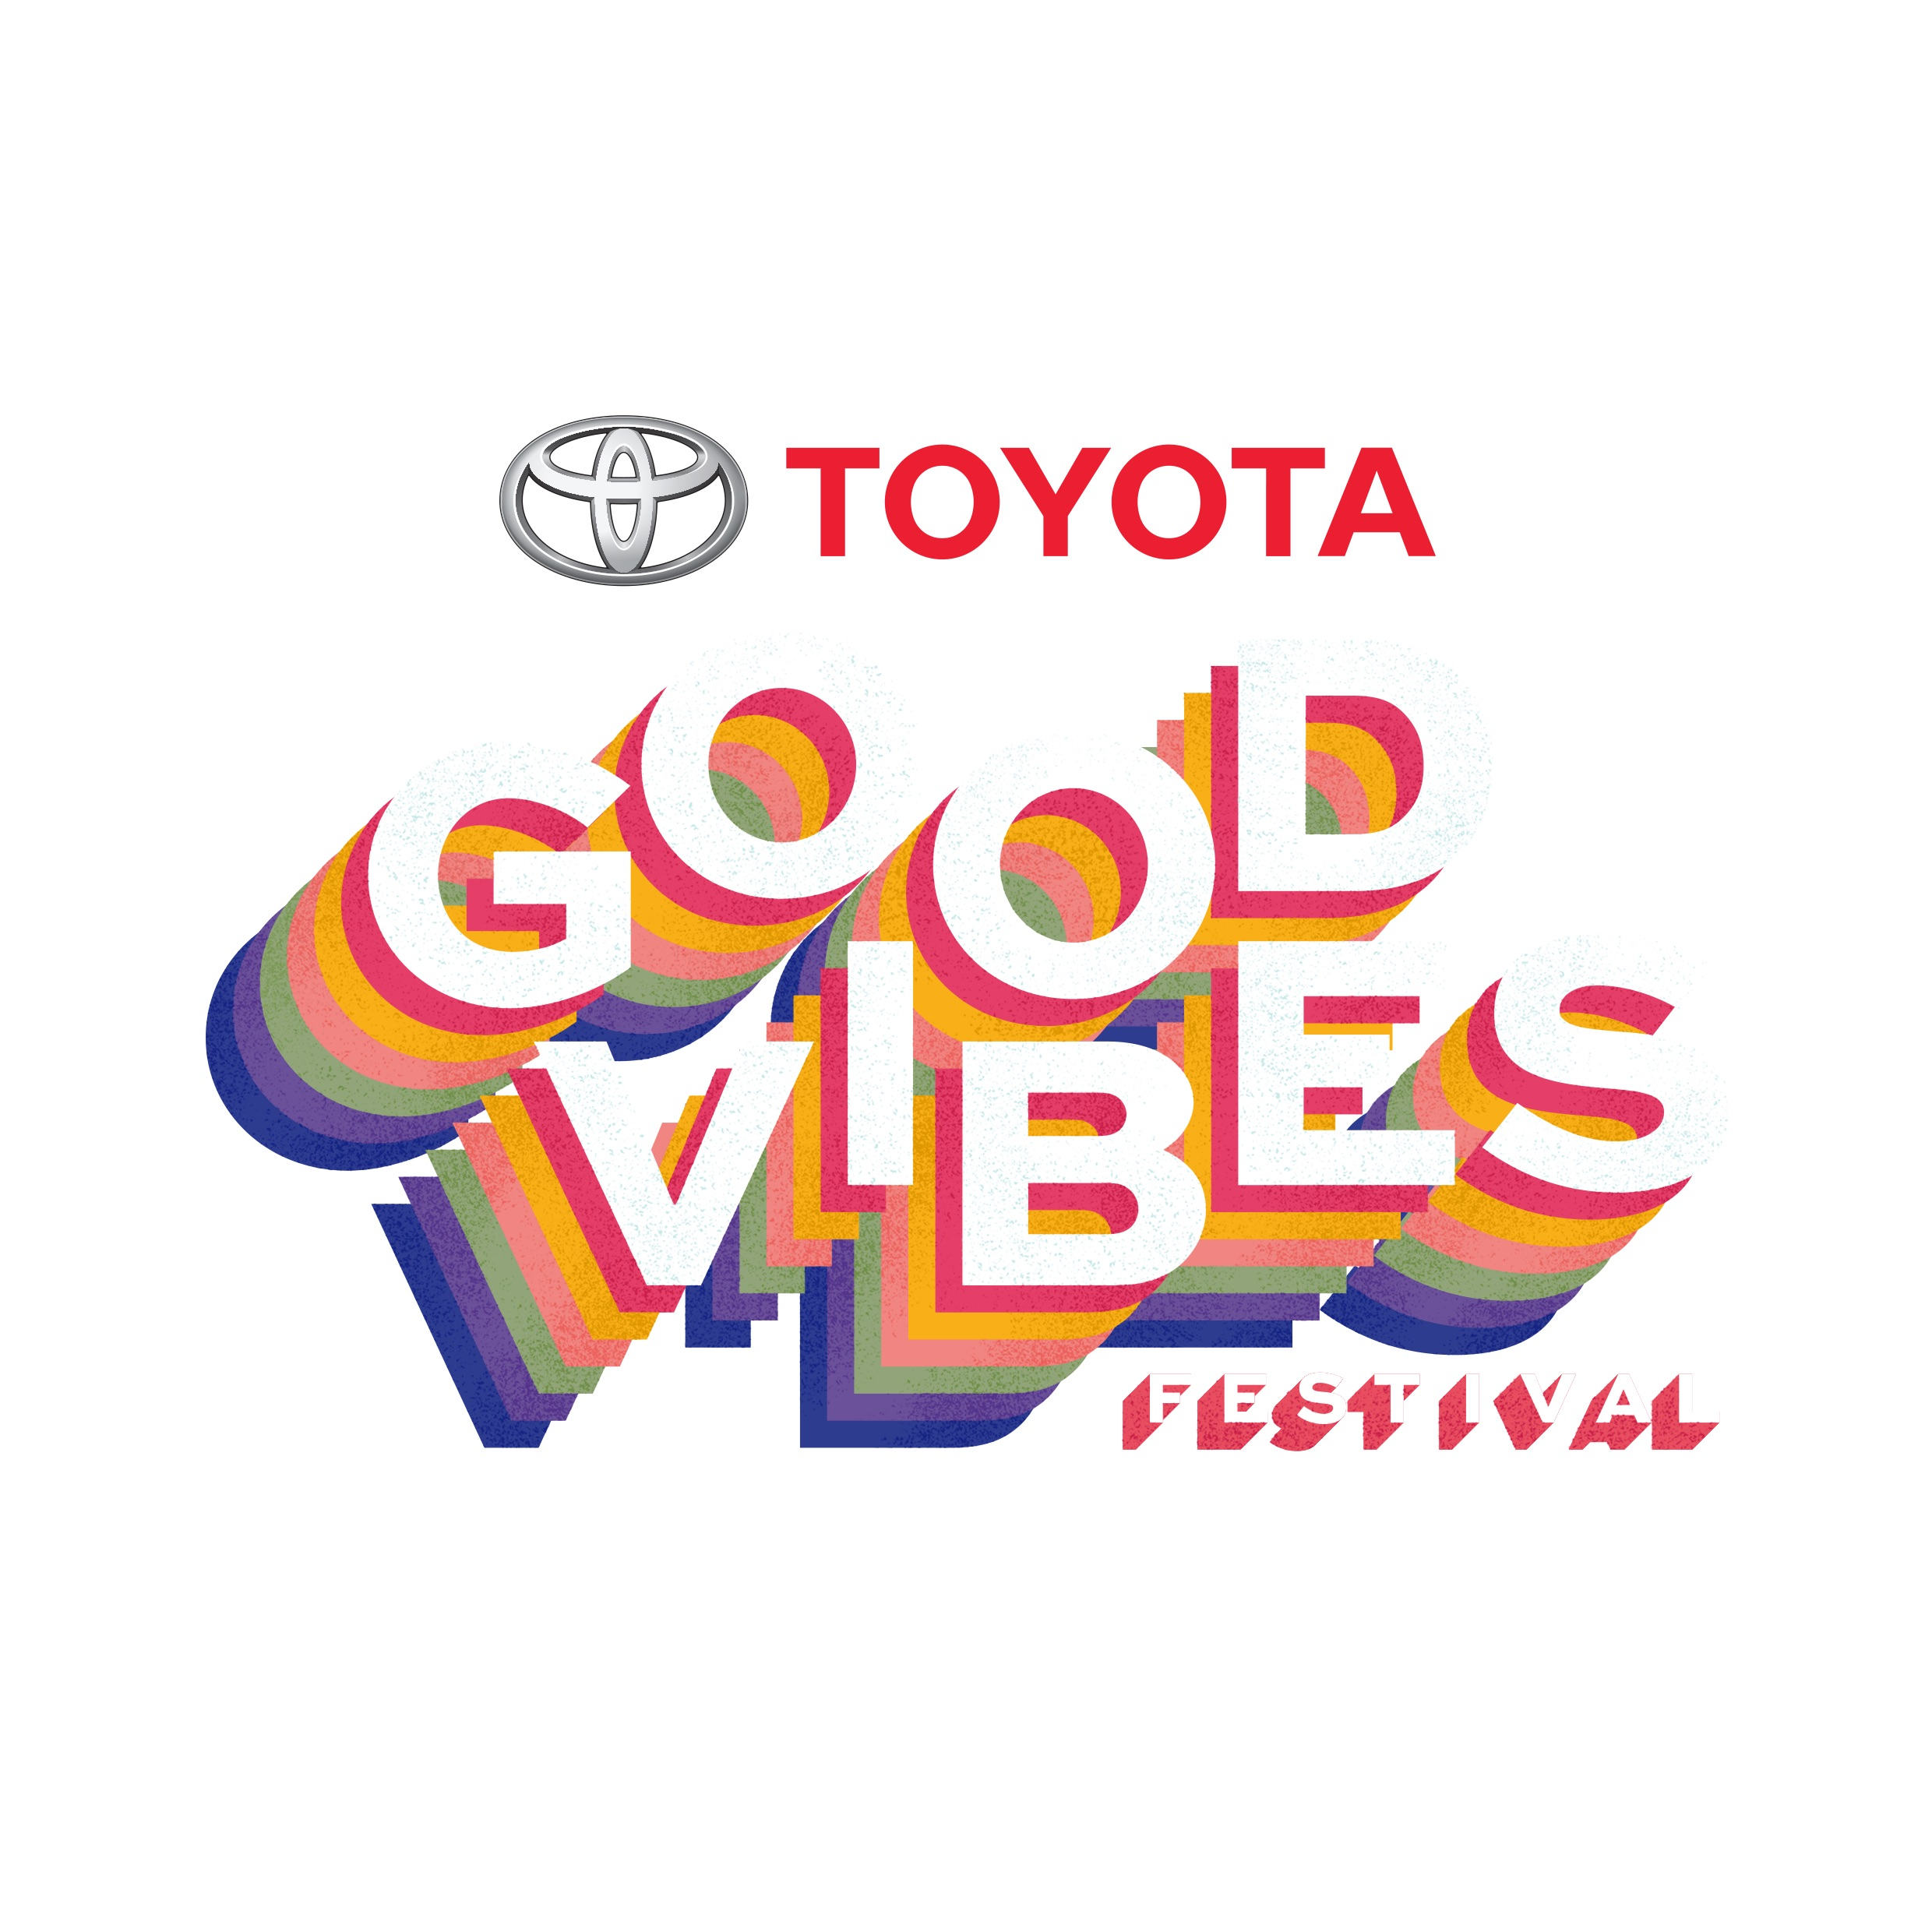 Malaysia's homegrown Good Vibes Festival is back with Lorde, alt-J, Nick Murphy and Louis the Child among the headliners